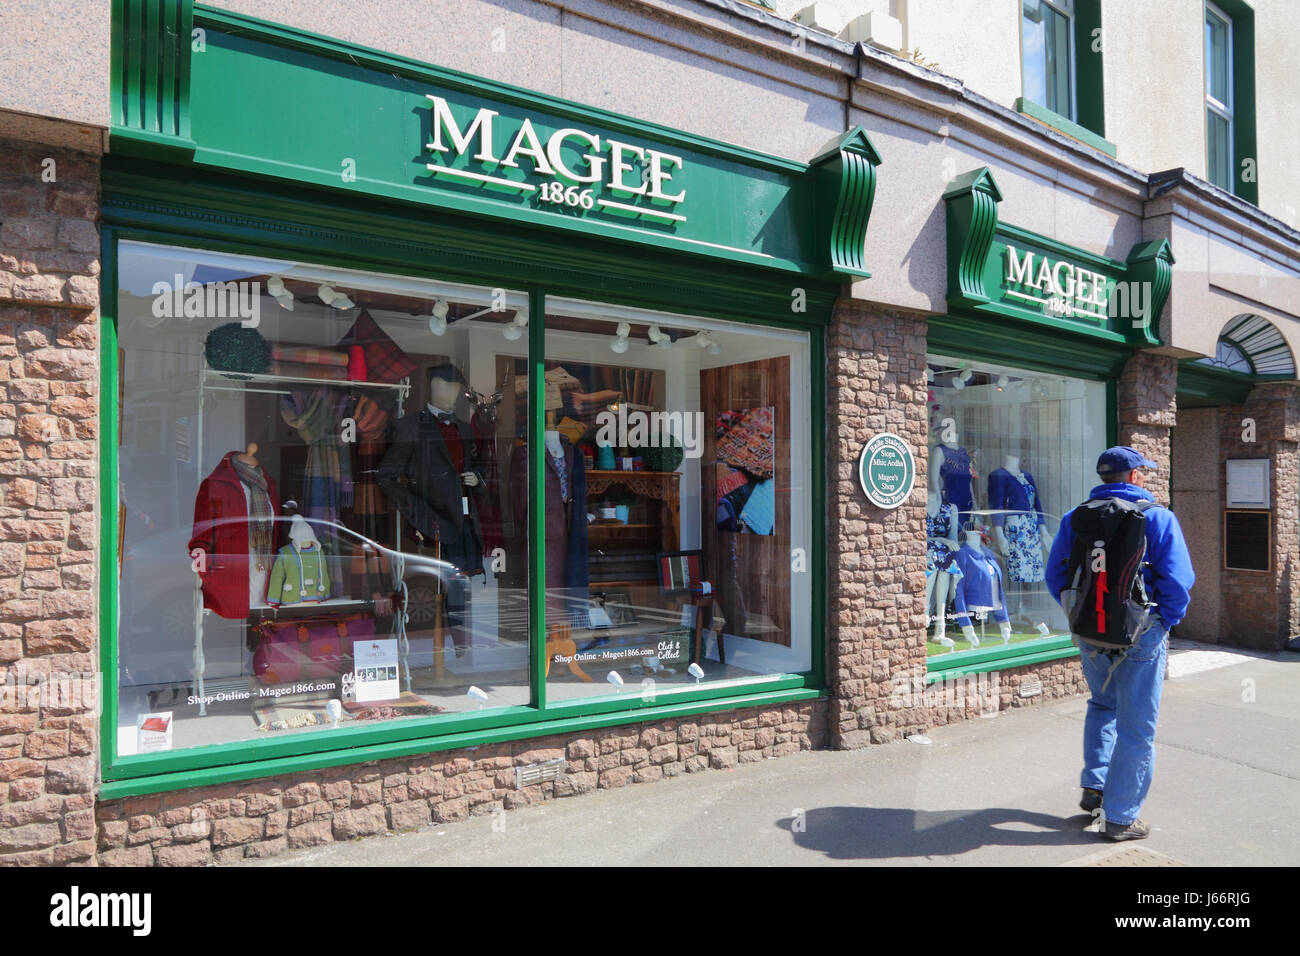 The Magee 1866 department shop in Donegal town, Ireland - Stock Image